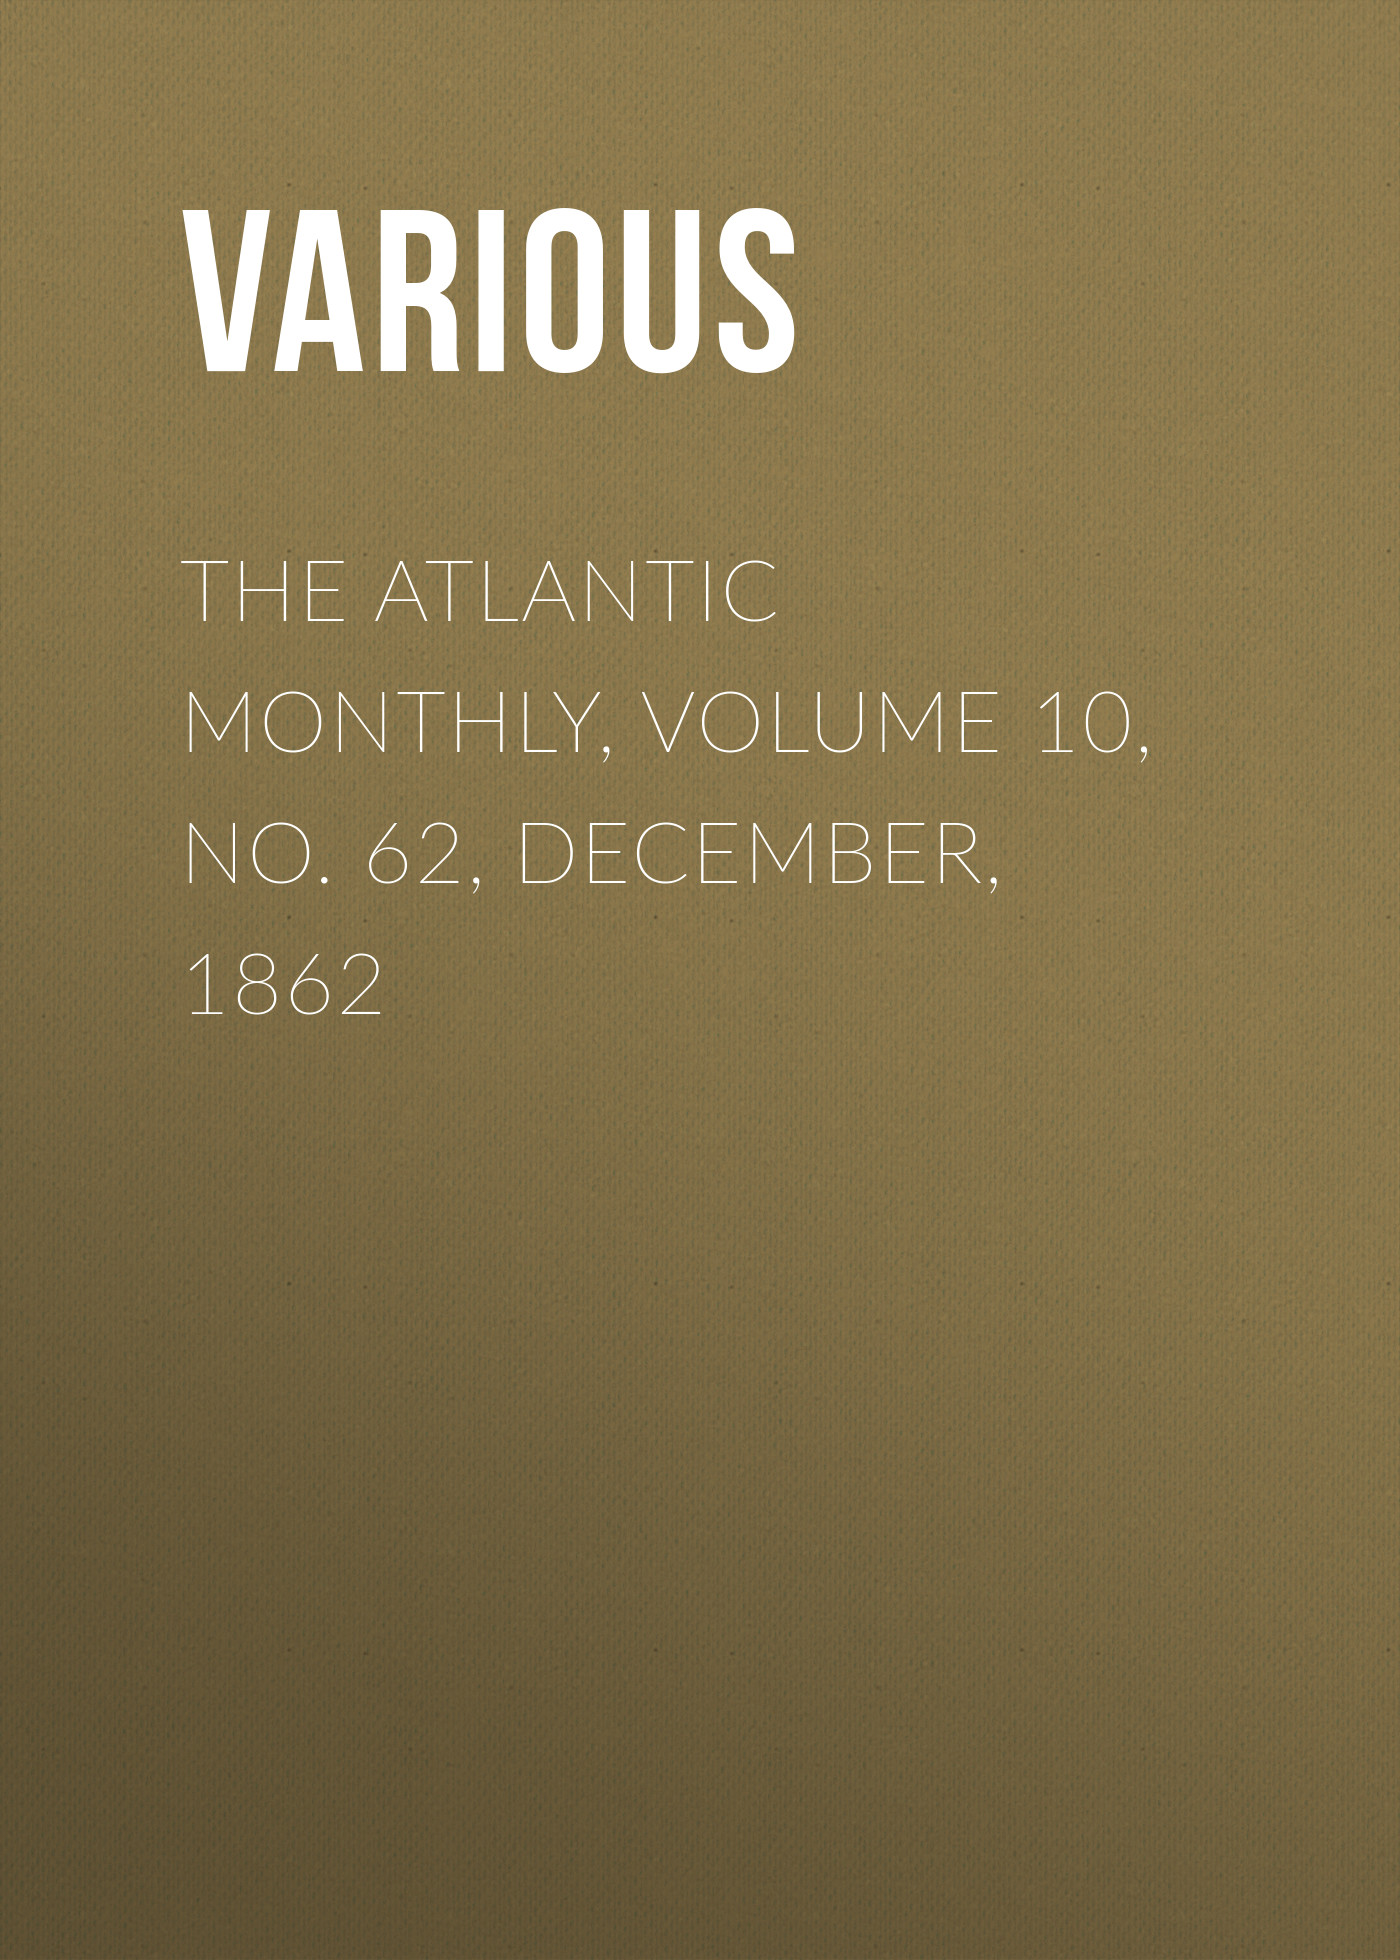 Various The Atlantic Monthly, Volume 10, No. 62, December, 1862 various the atlantic monthly volume 02 no 10 august 1858